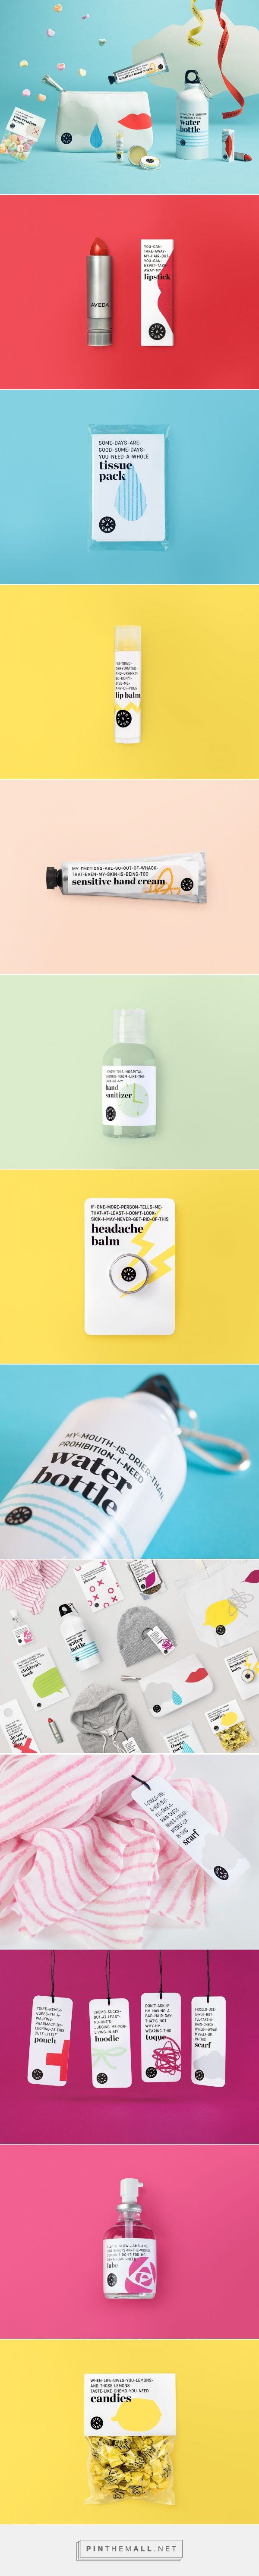 Give-A-Care - RETHINK Breast Cancer packaging design by Agency lg2 - http://www.packagingoftheworld.com/2018/01/give-care-rethink-breast-cancer.html